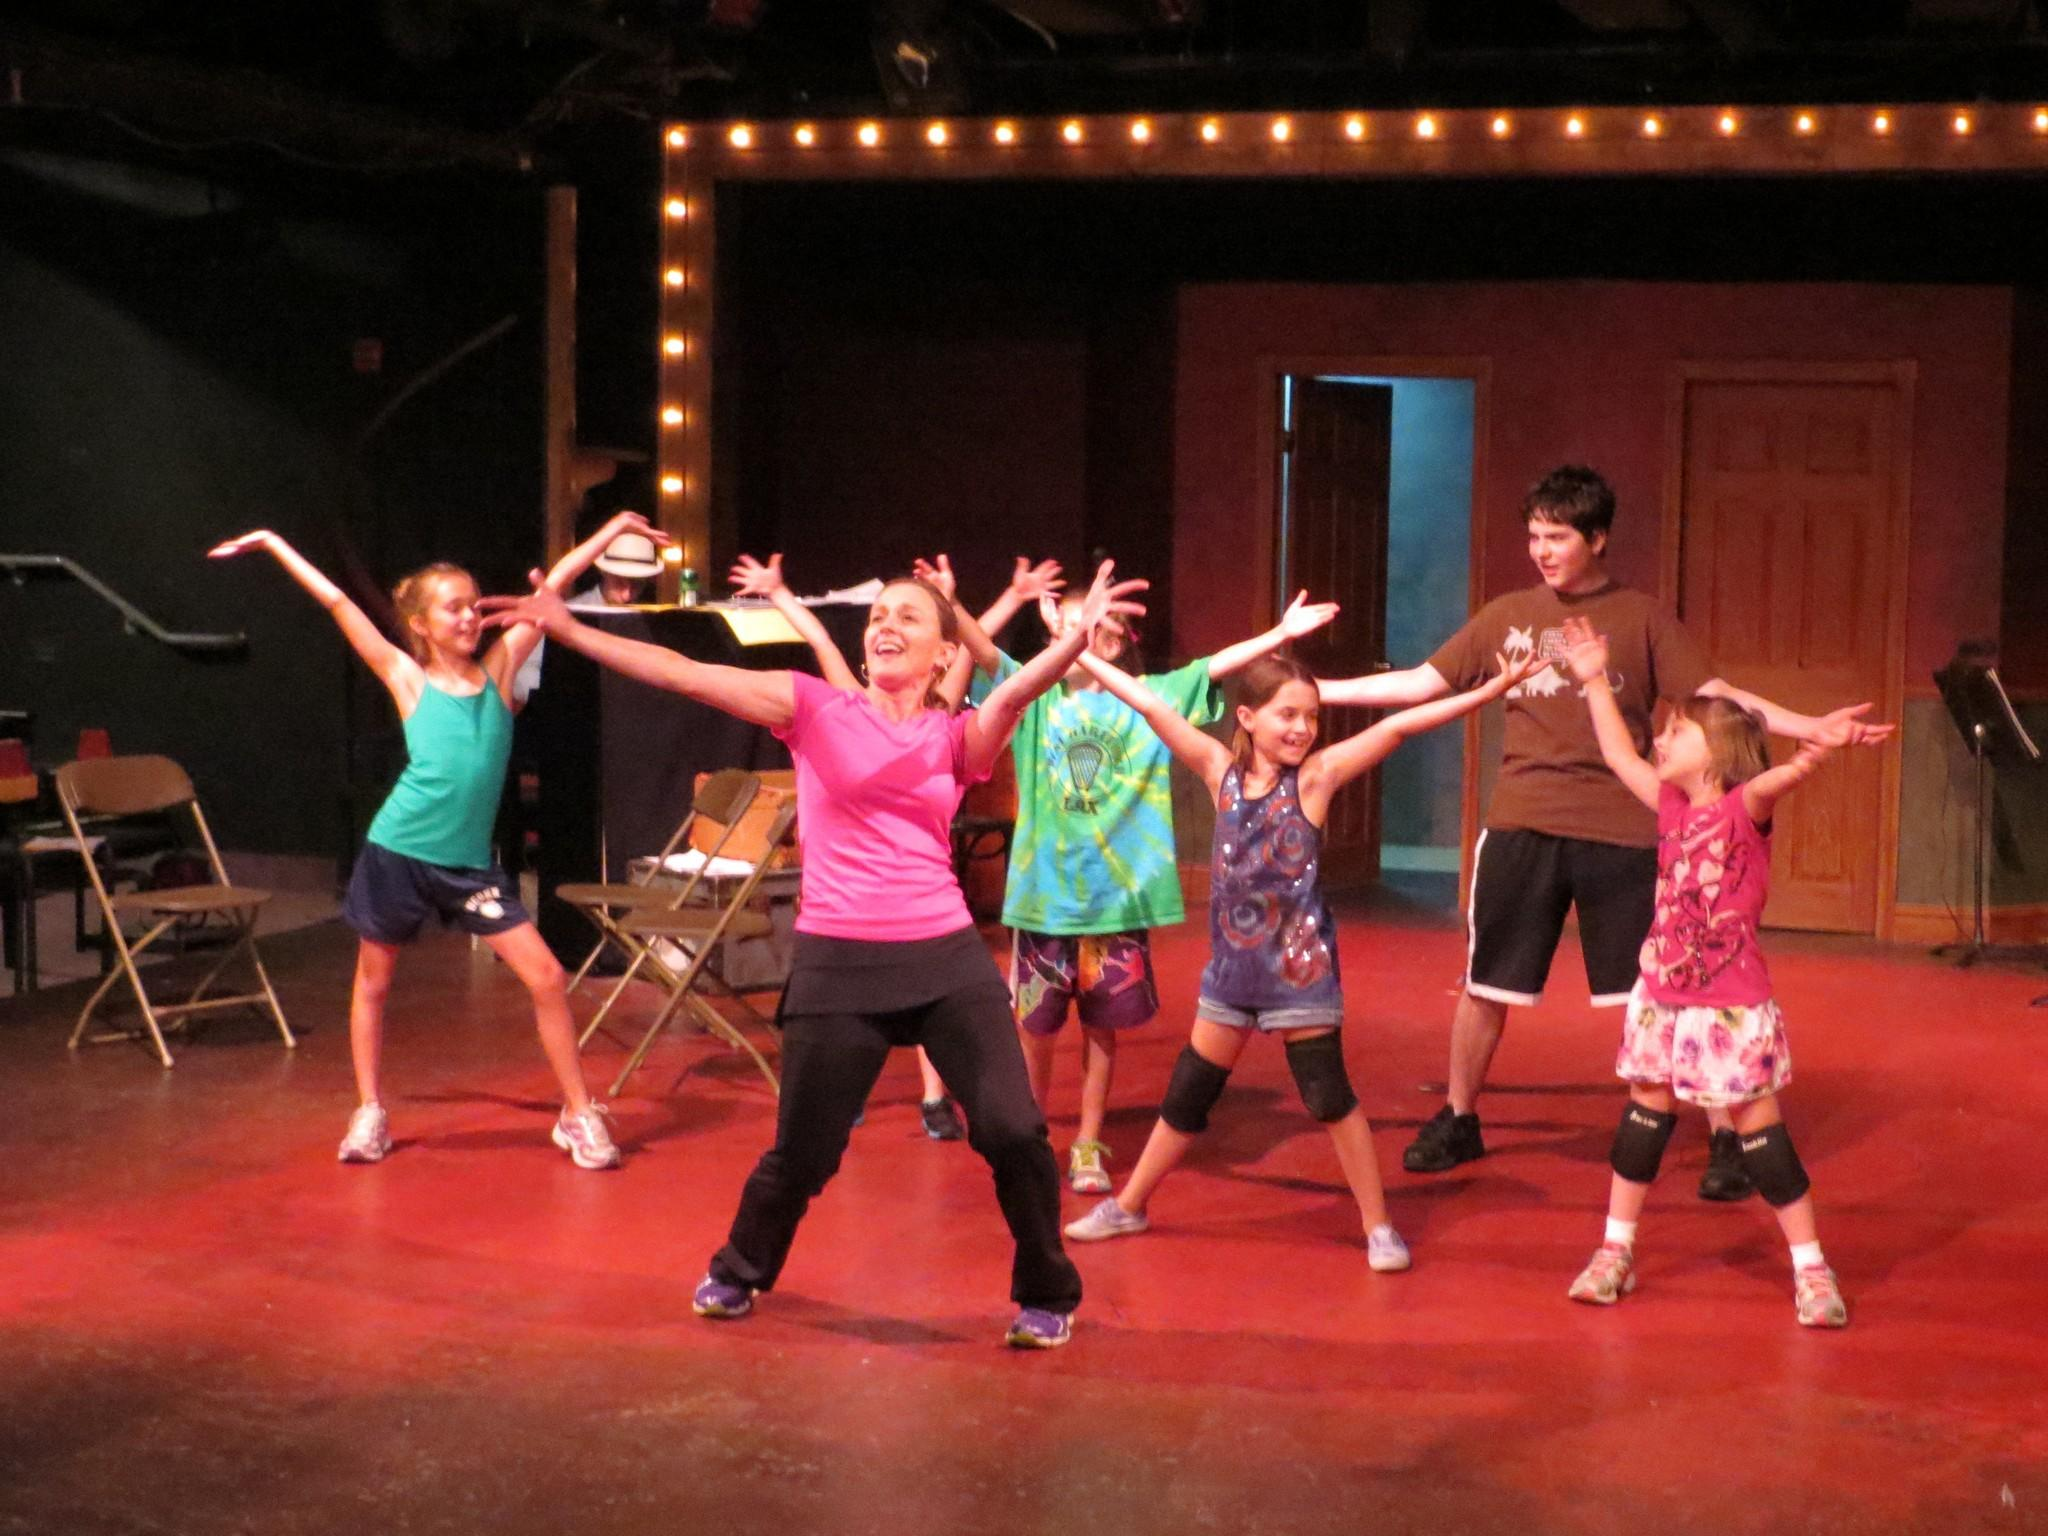 Broadway artist Susan Haefner leads a master class for students form the Young Actors Musical Theatre Preparatory Program, returning this summer to Playhouse on Park.